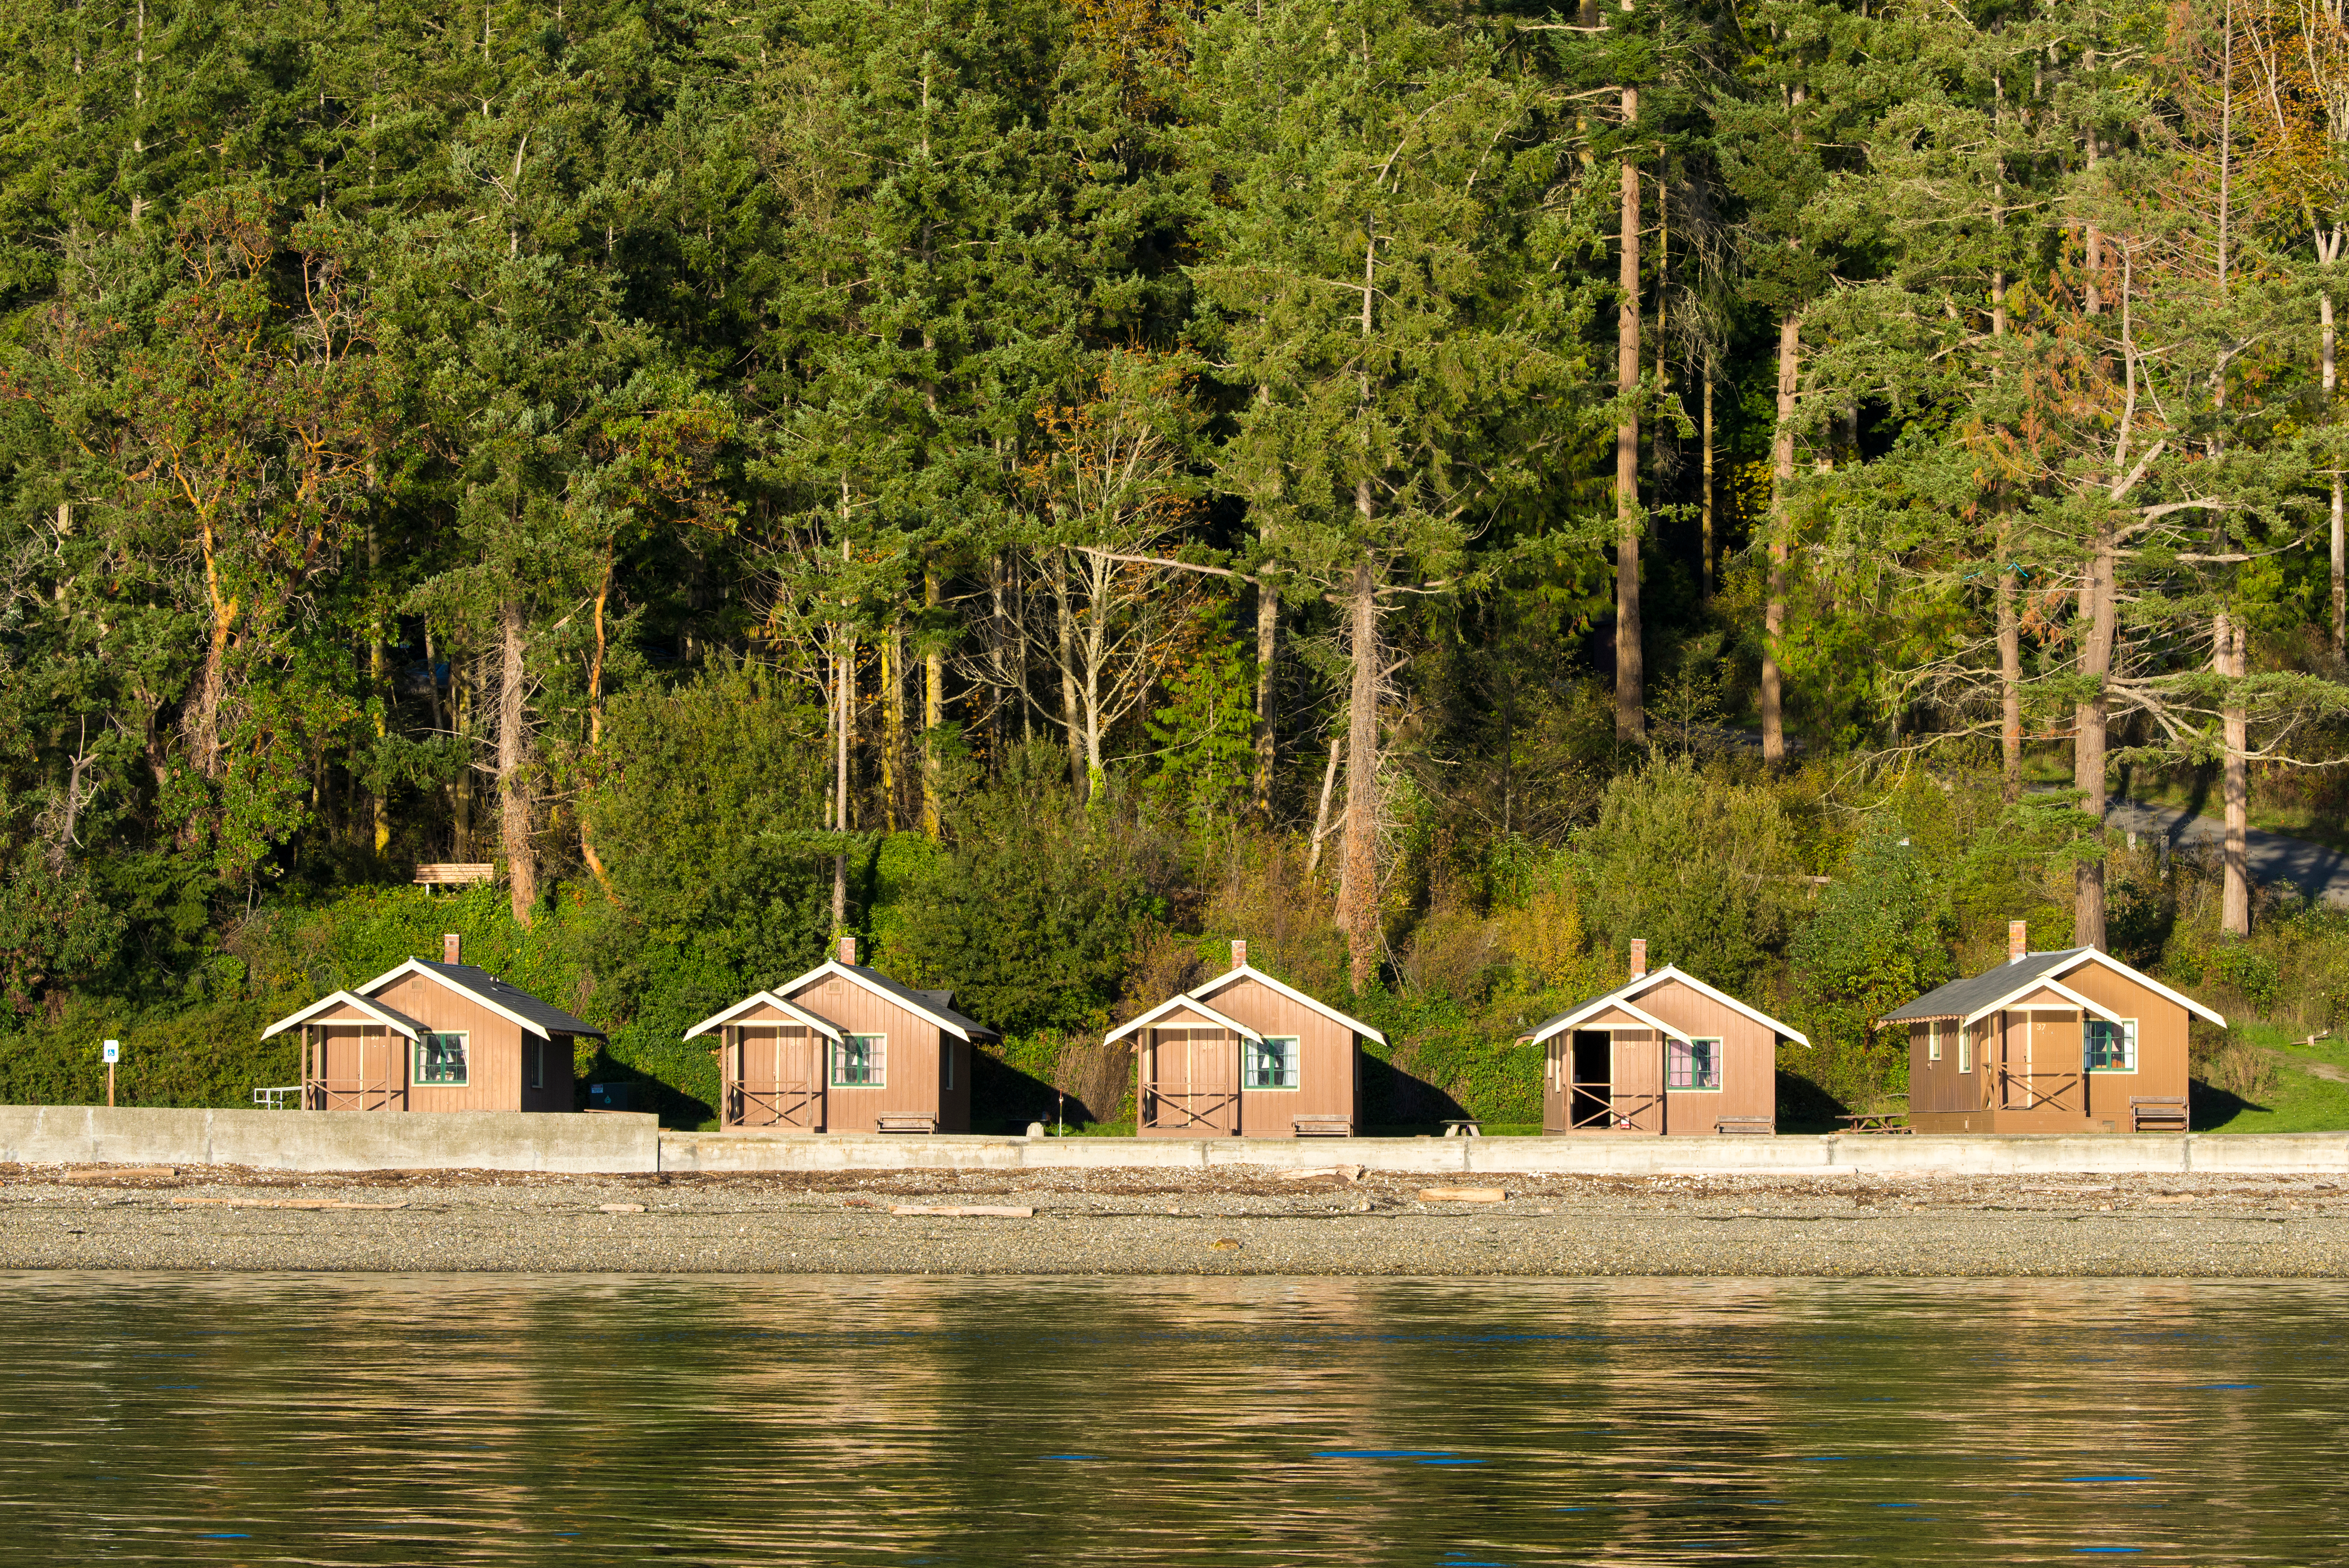 In the foreground is a body of water. In the distance is a row of small wooden cabins. Behind the cabins is a forest with many trees.